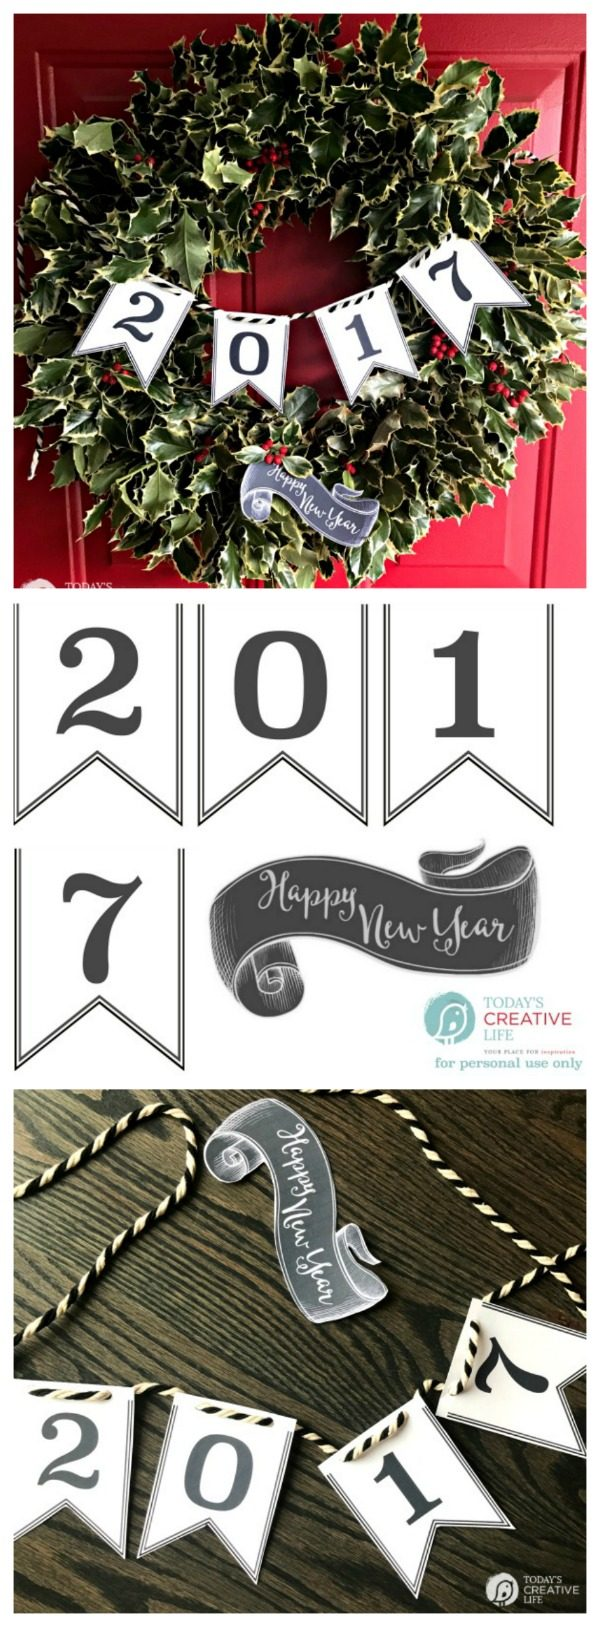 happy new year 2017 printable banner this free printable banner for new years eve makes